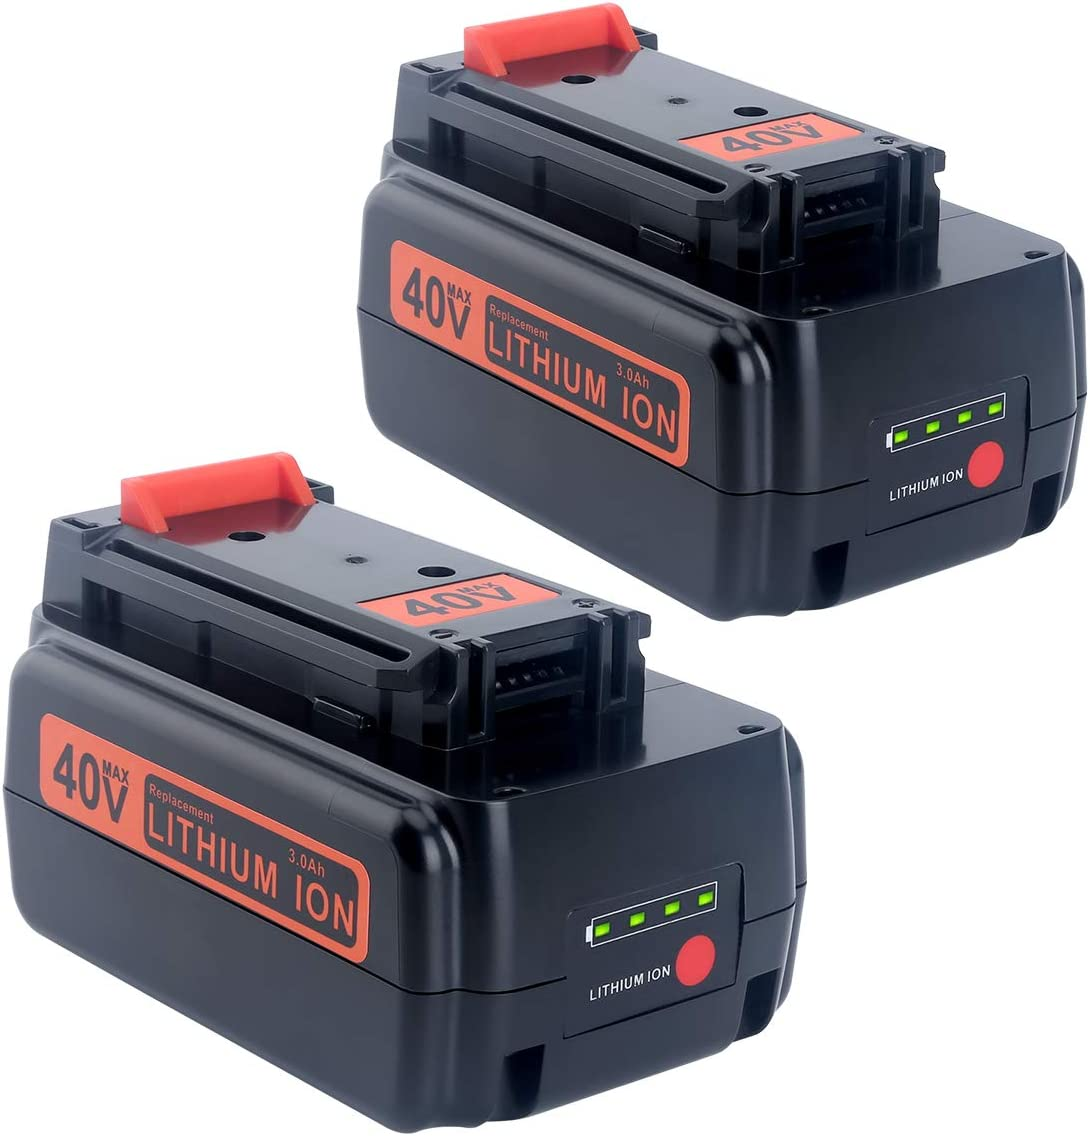 Lasica 2-Pack 40V Lithium Battery Replacement Black and Decker 40V Battery LBX2040 LBXR36 for Black Decker 36/40V MAX Cordless Tools LCS1240B LSWV36 LST136B LHT341FF LGC120AM 40V Black Decker Battery